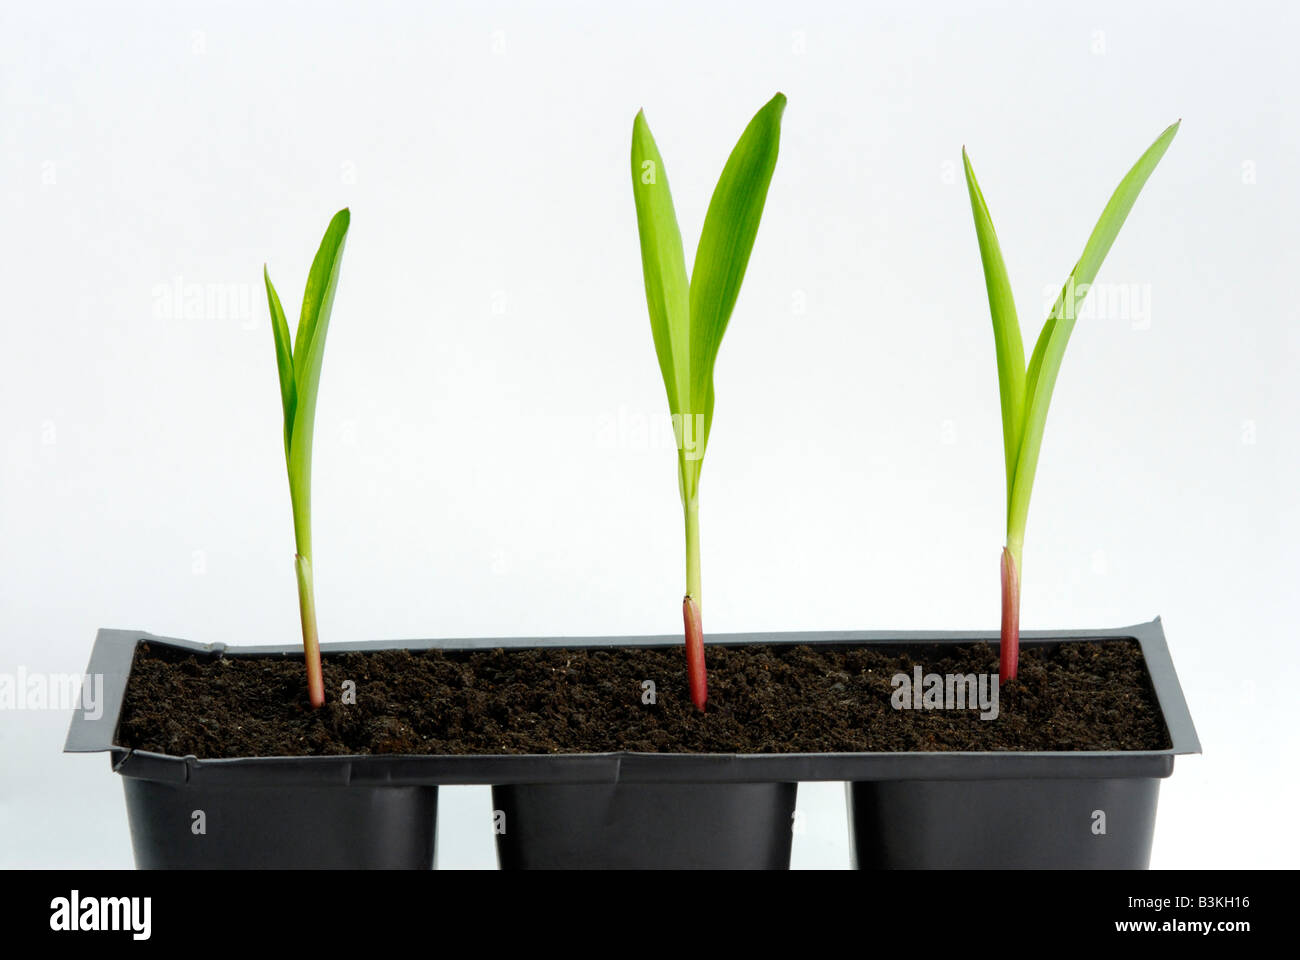 Corn Zea mays seedlings in flats The plants are 1-2 weeks old - Stock Image